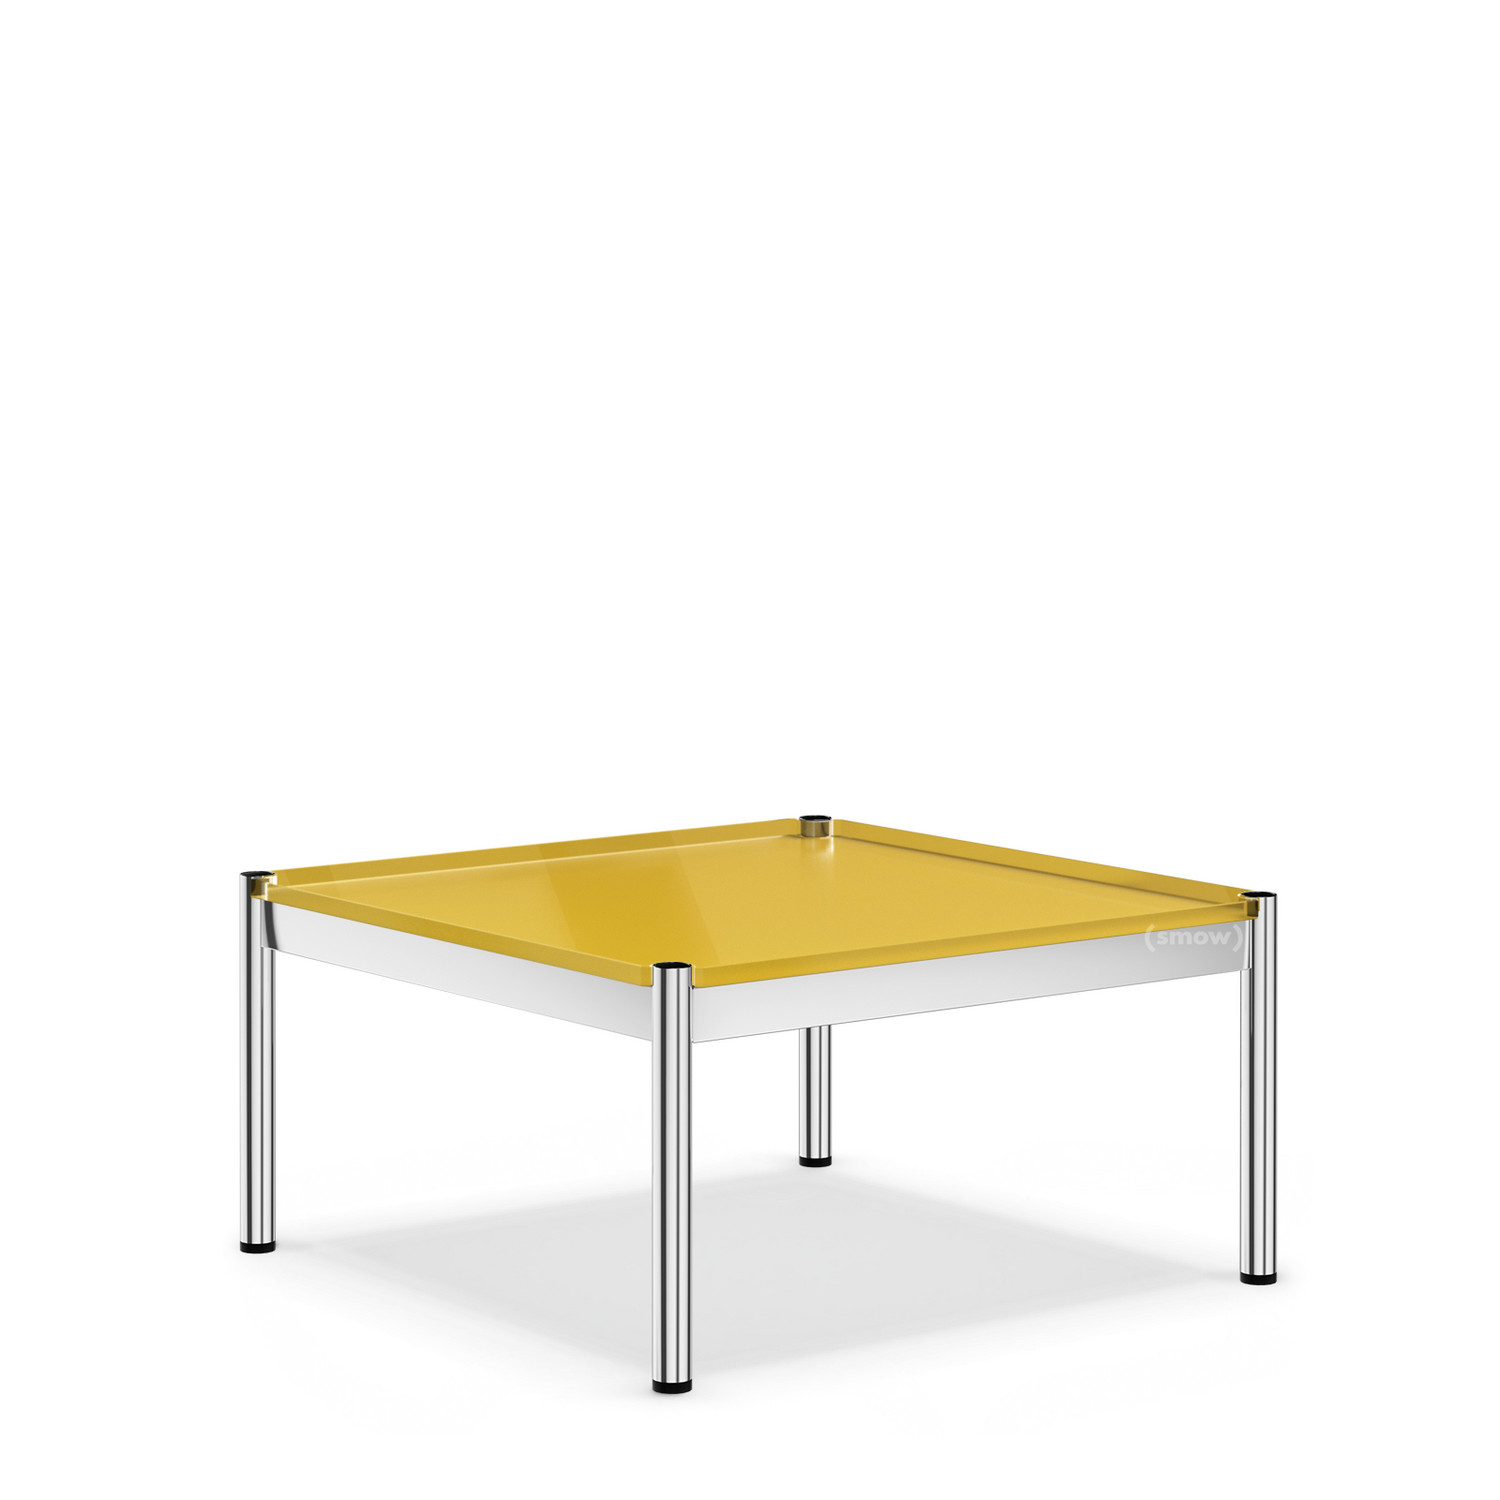 Couchtisch Glass Usm Haller Coffee Table 75 X 75 Cm Glass Golden Yellow Ral 1004